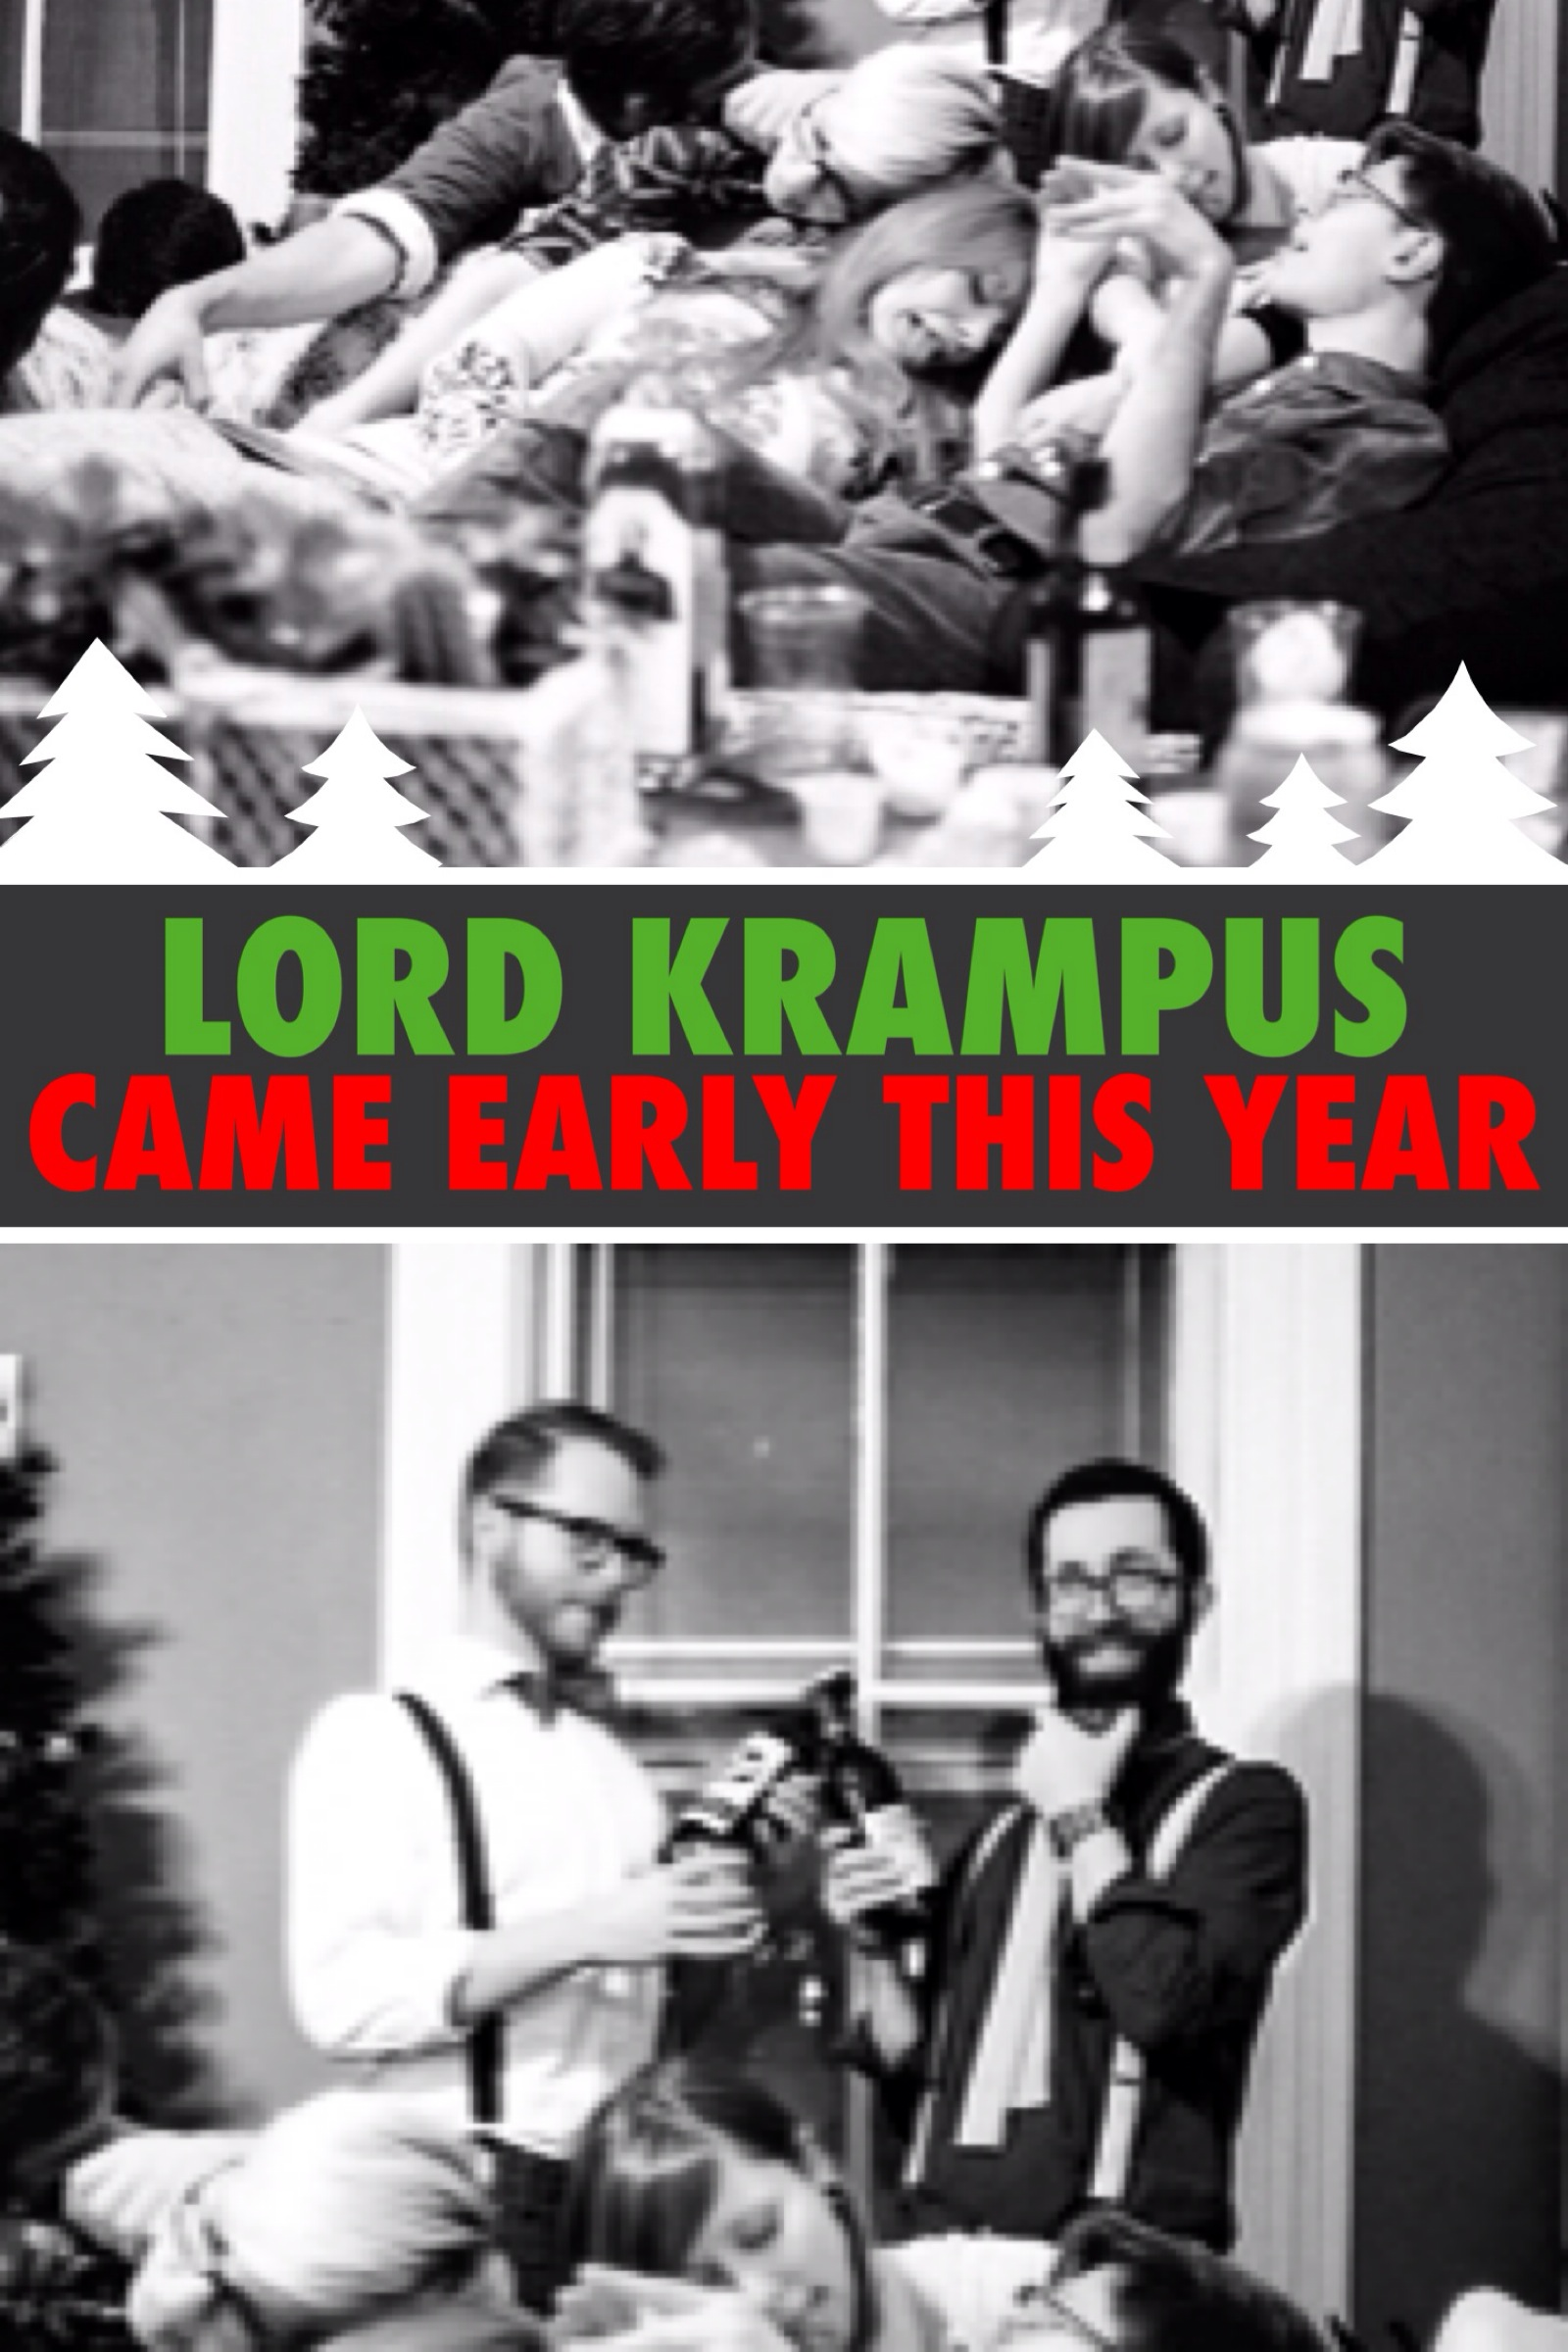 12 - Lord Krampus Came Early This Year.jpg